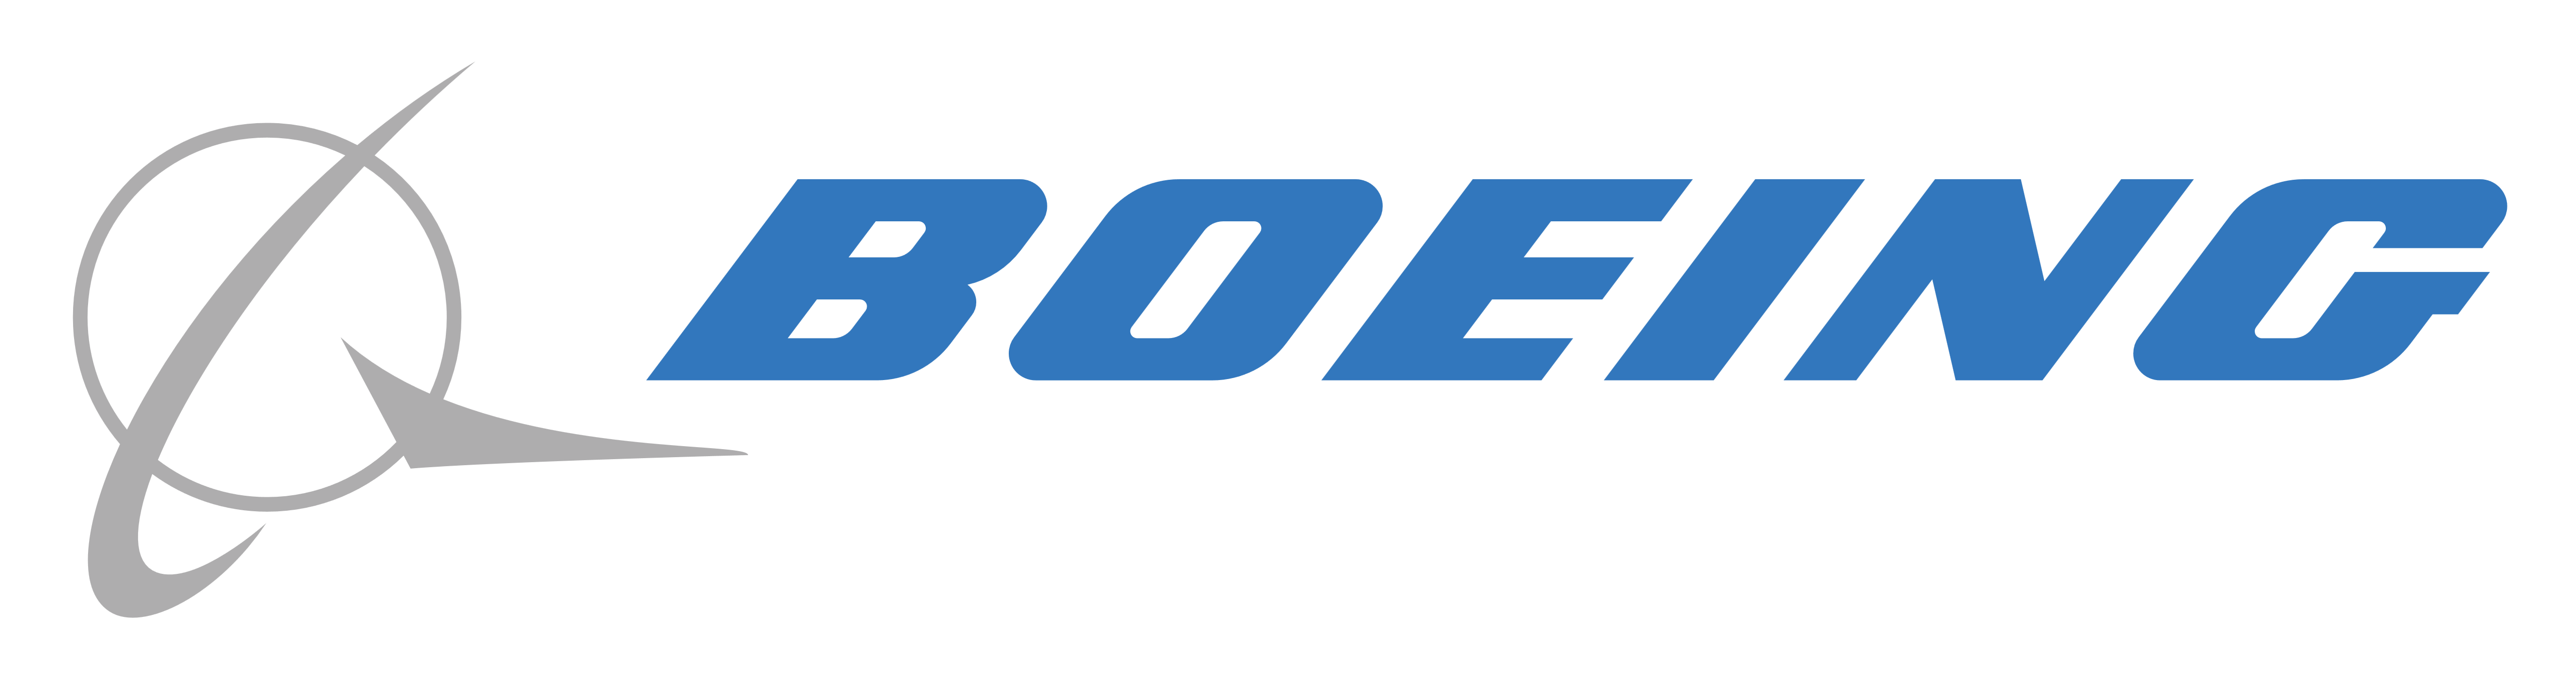 Technical Fellow | Boeing